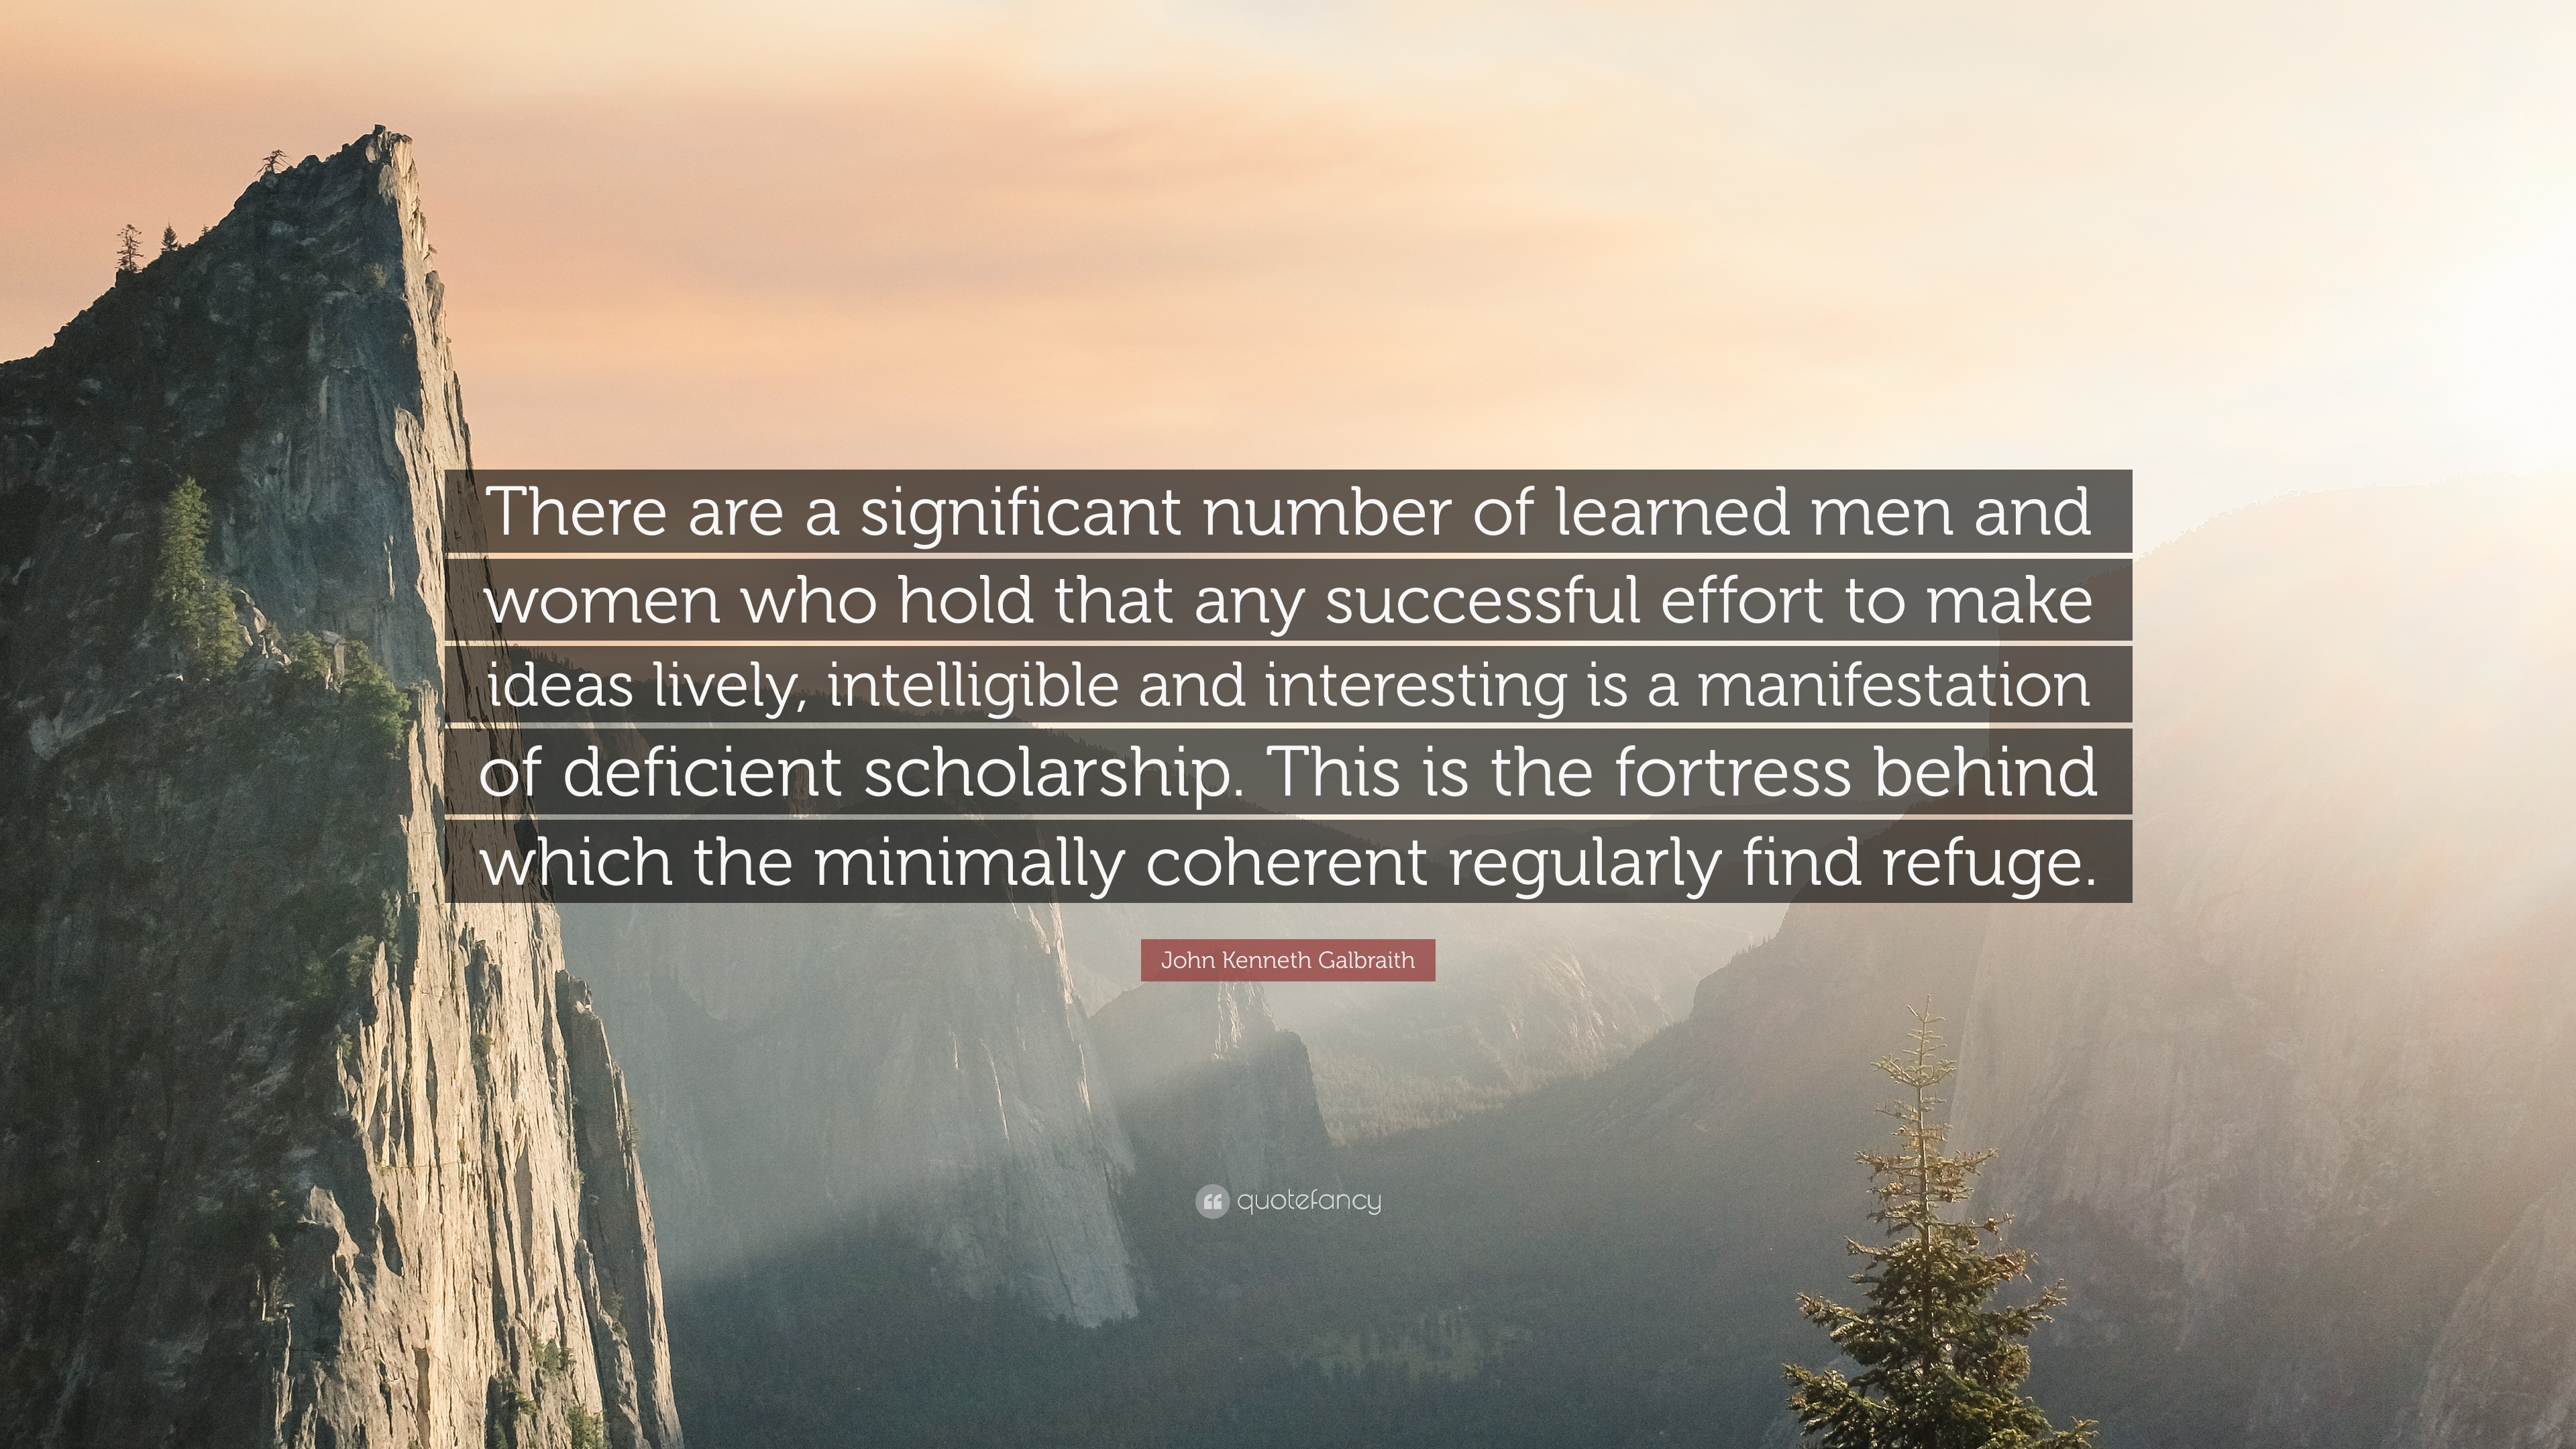 John Kenneth Galbraith Quote u201cThere are a